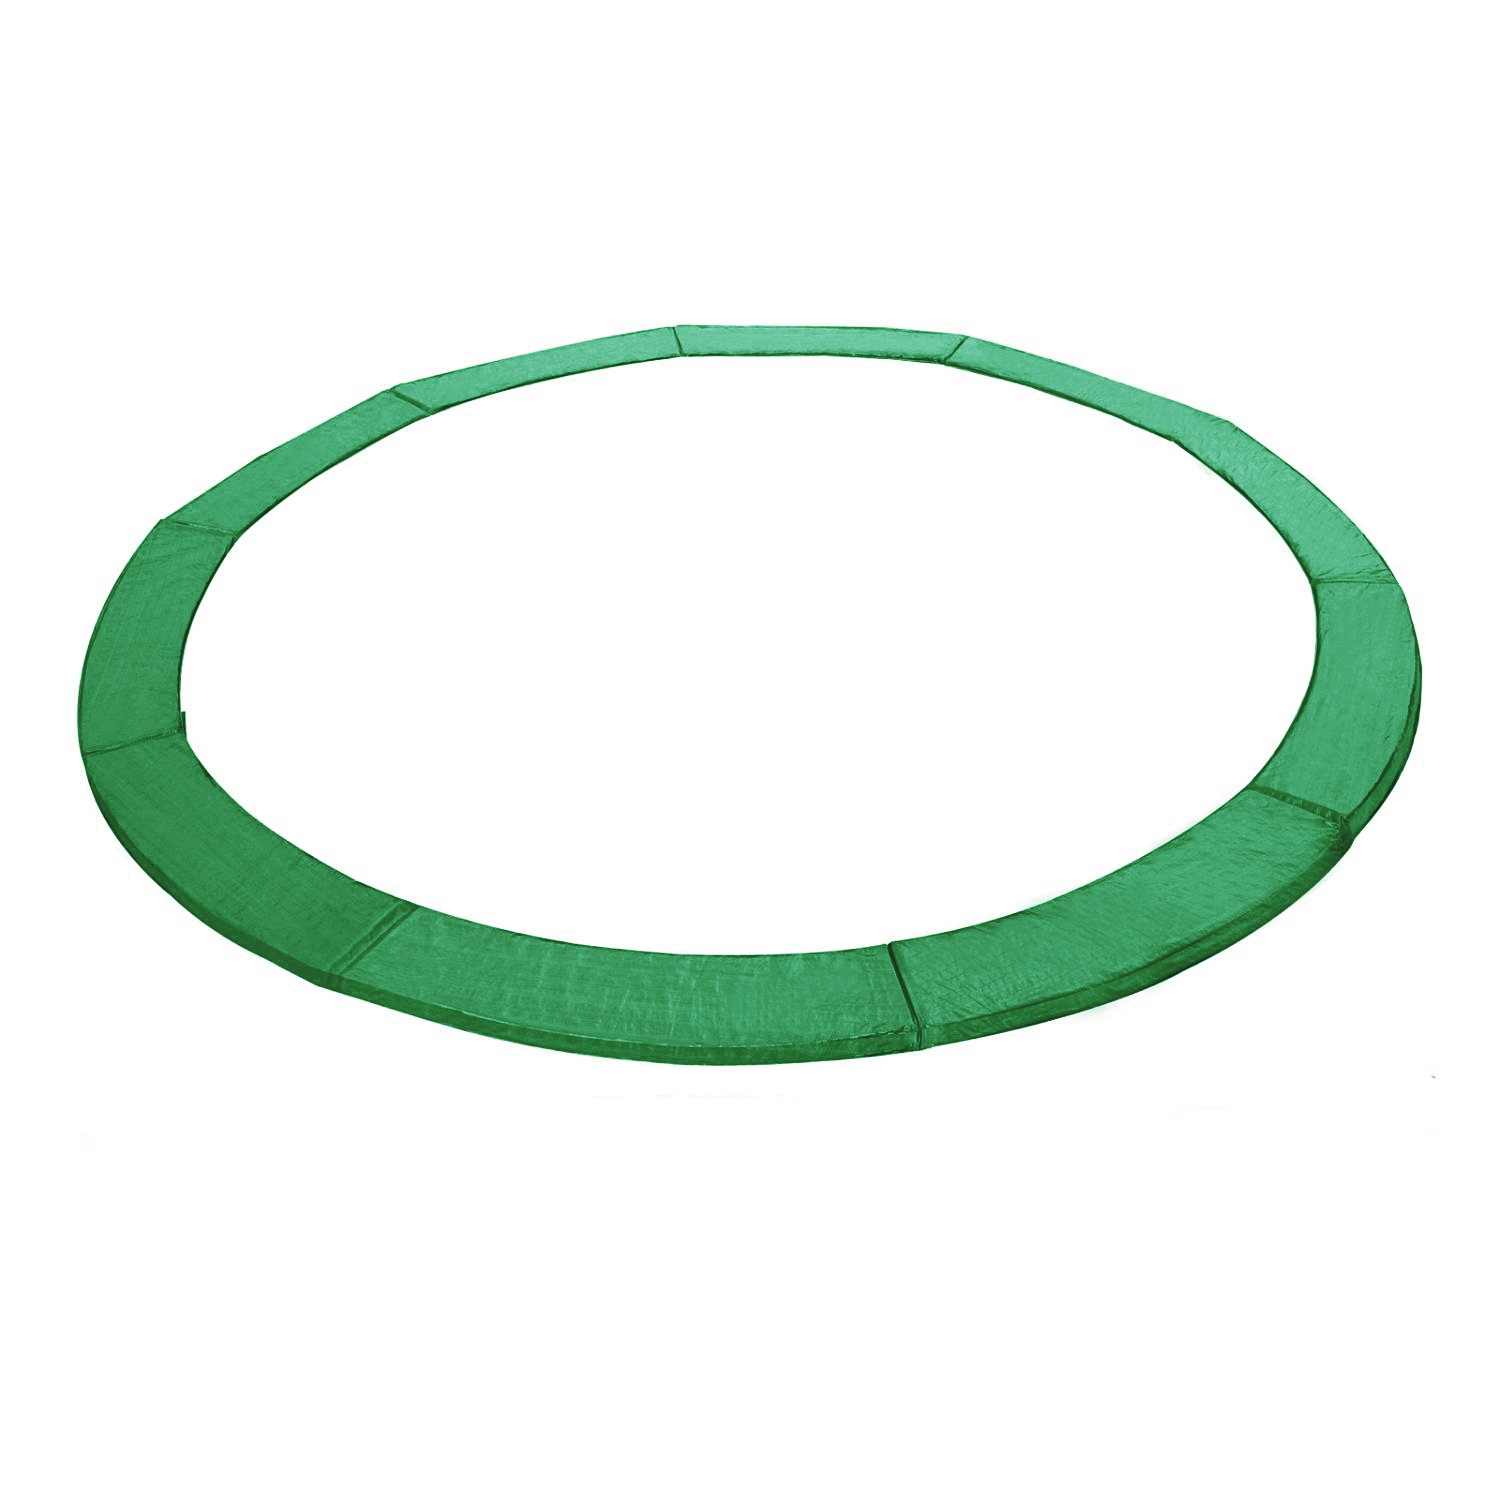 Trampoline Replacement Safety Pad Frame Spring Round Cover, 12-Foot, Green